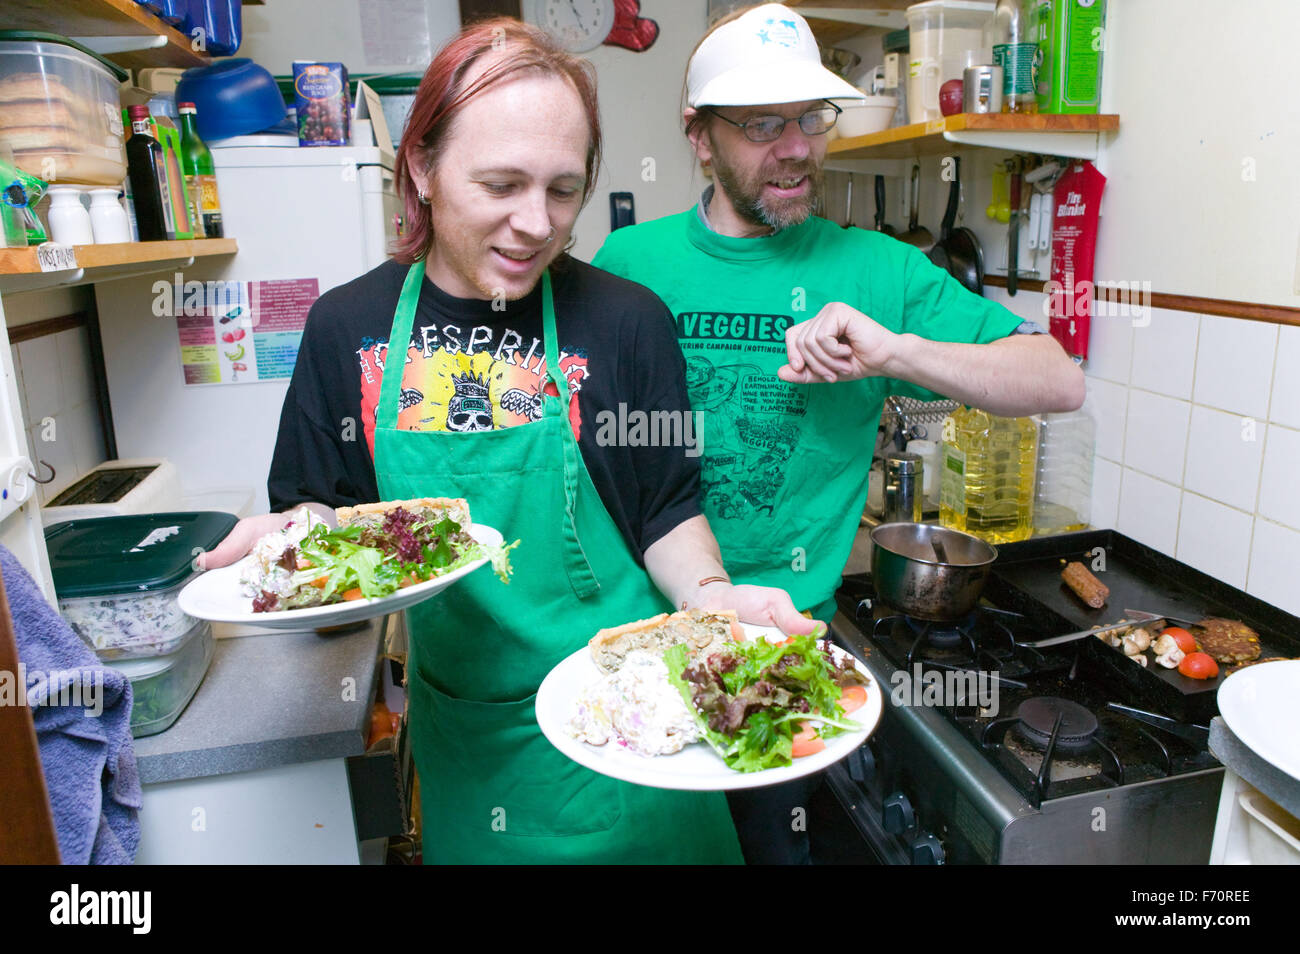 Catering Workers Stock Photos & Catering Workers Stock Images - Alamy